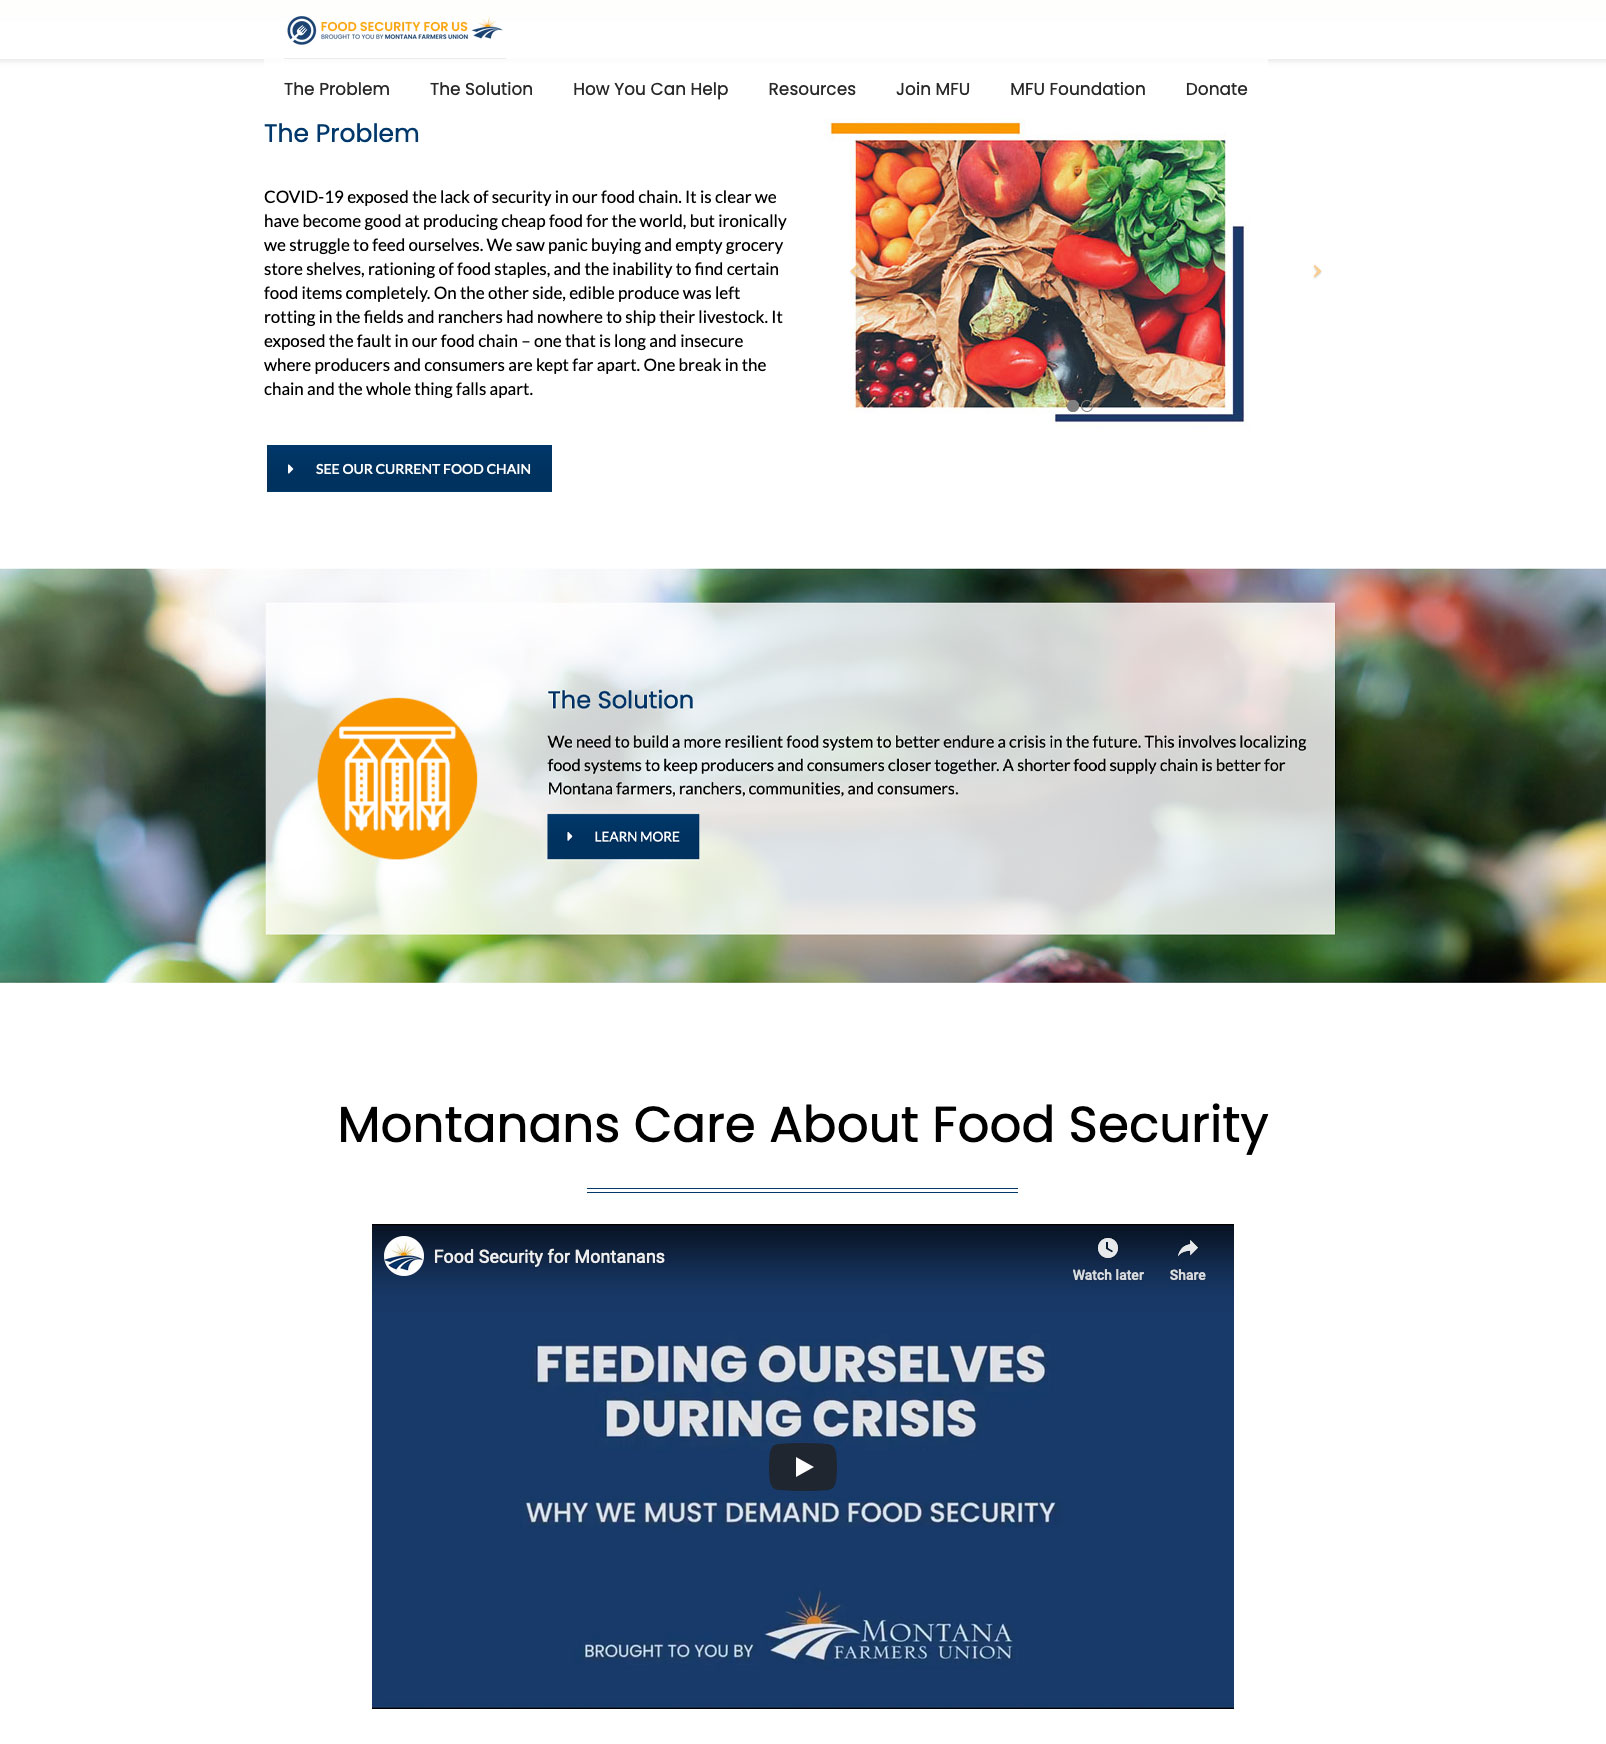 MFU Food Security for Us home page